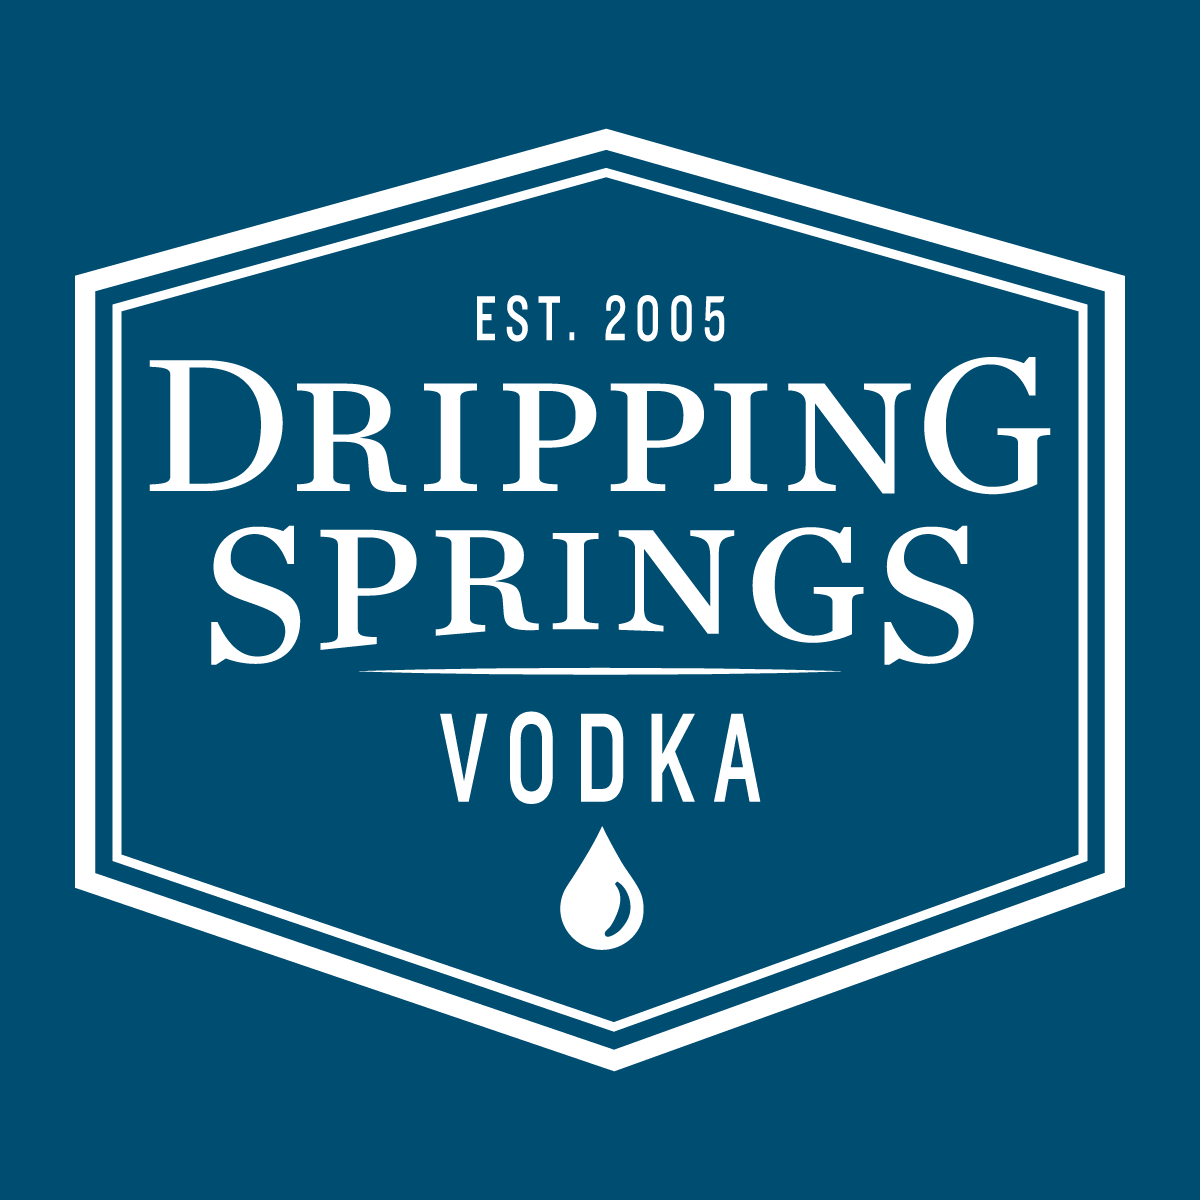 Dripping Springs Vodka 02.png